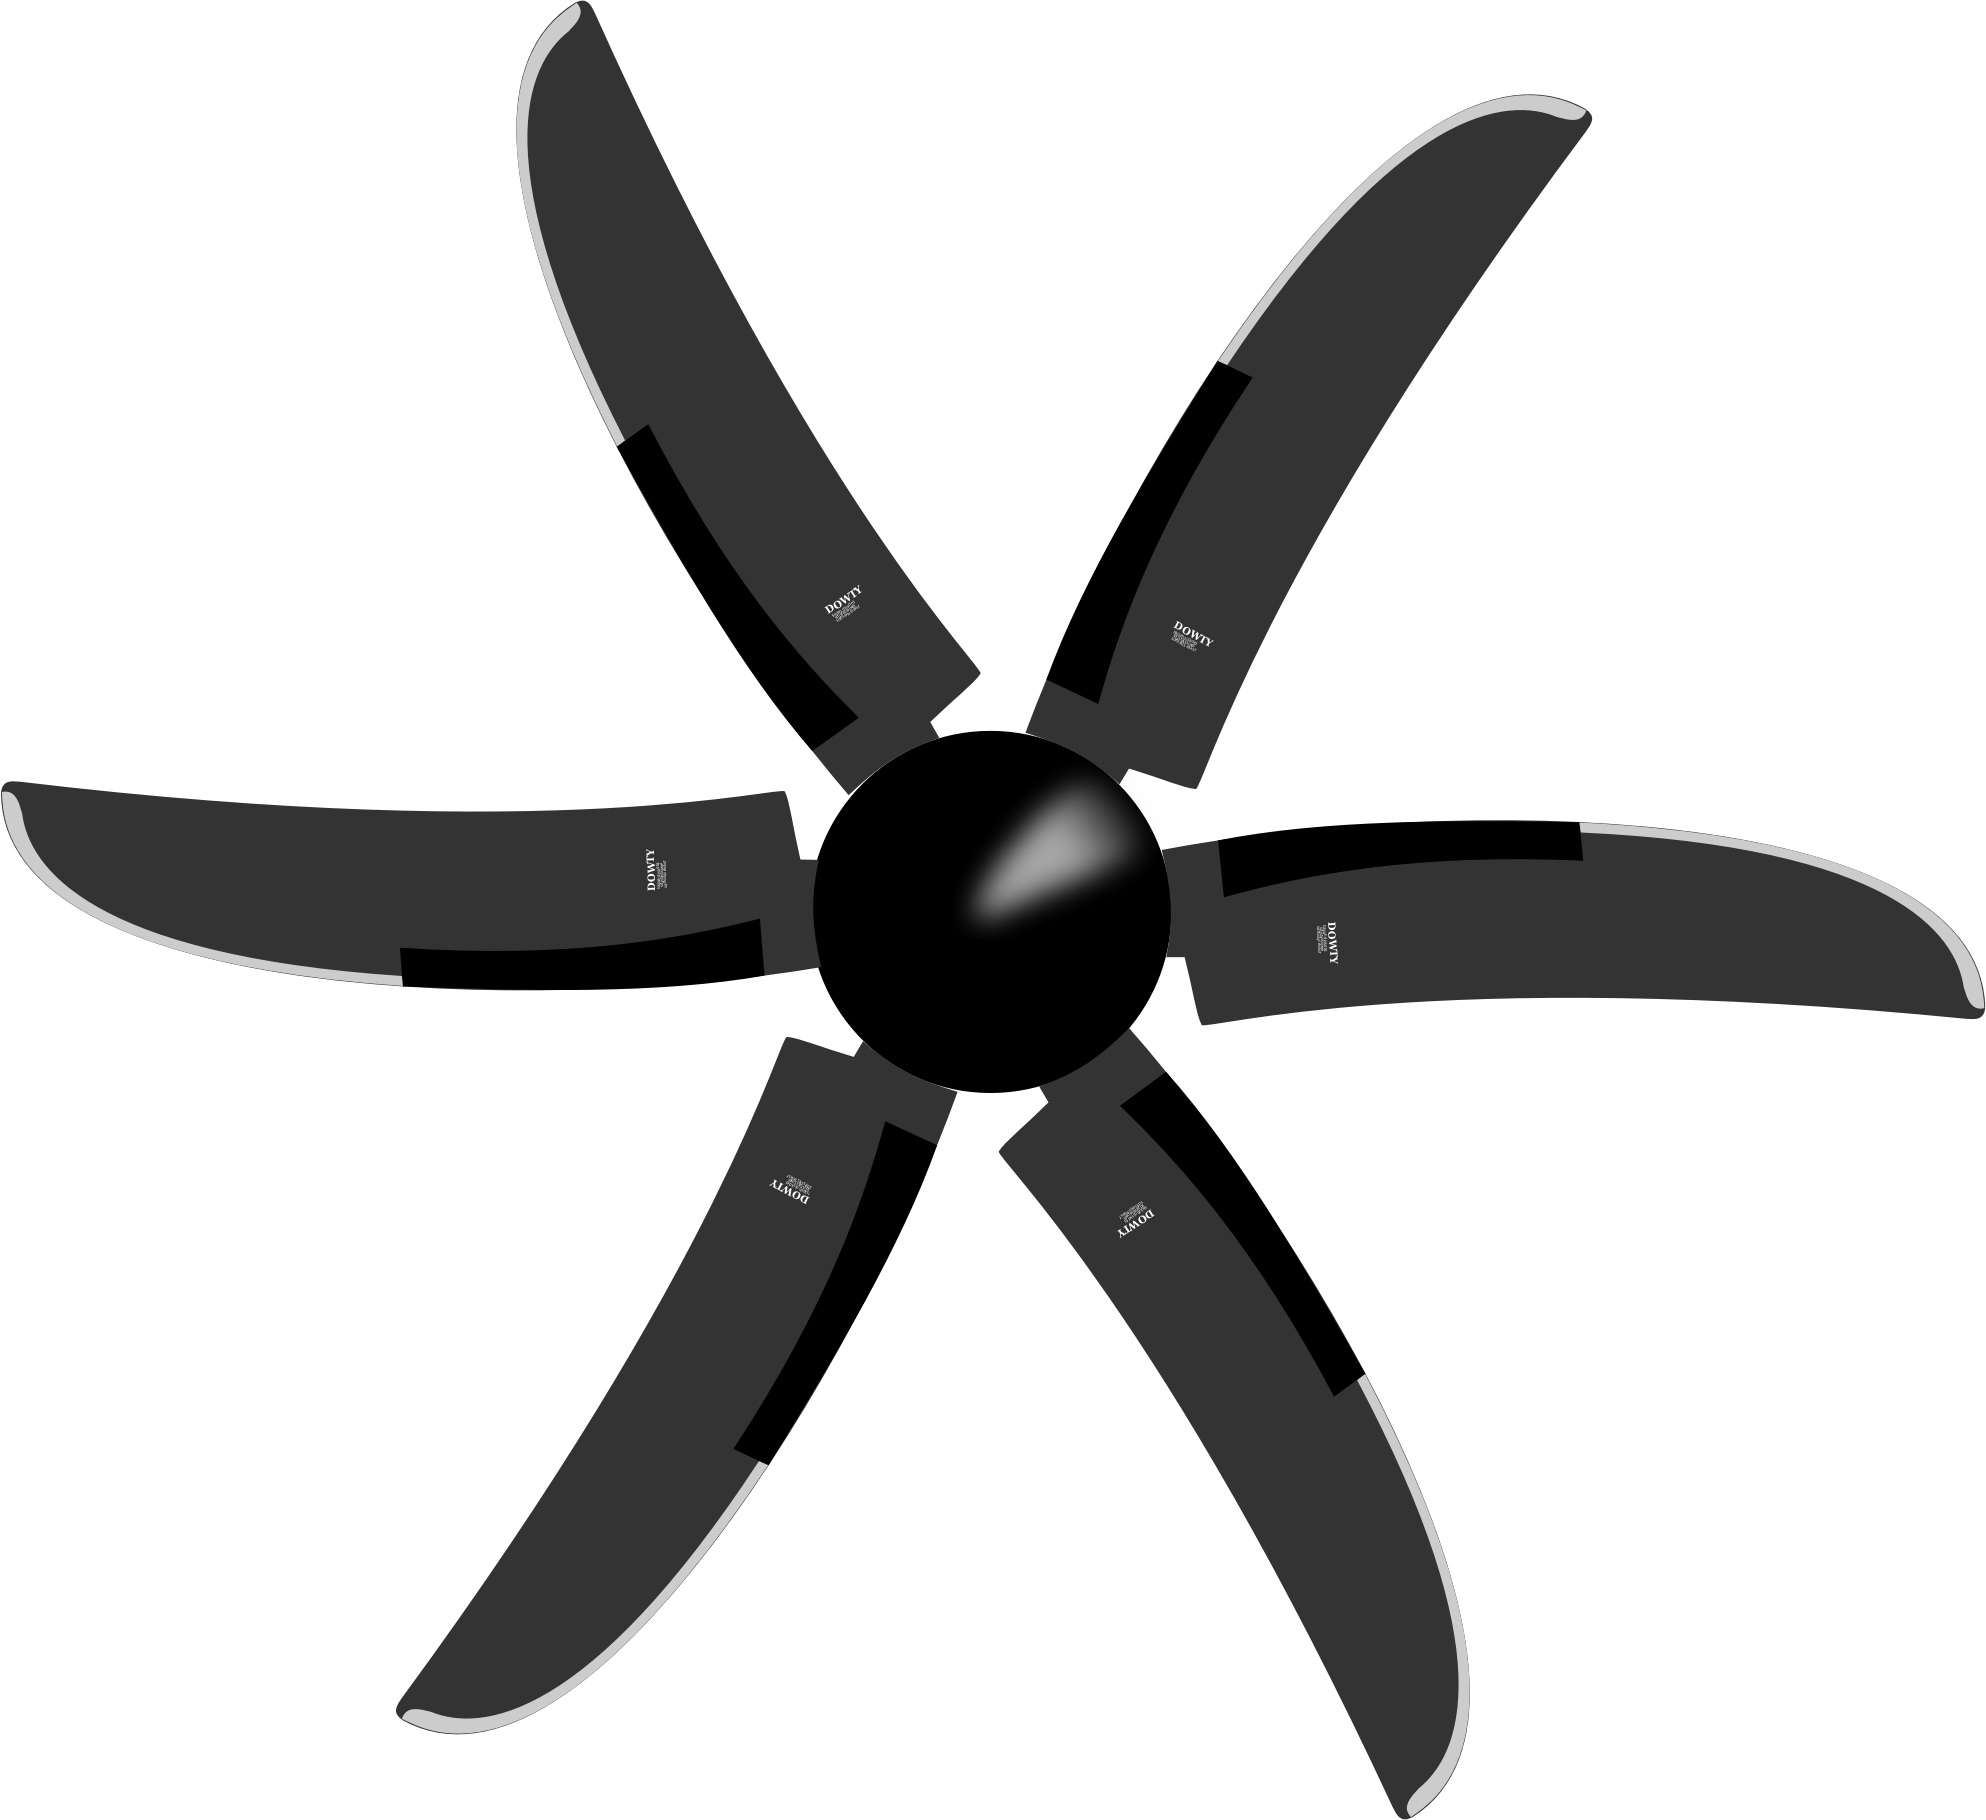 Clipart fanblades graphic stock Propeller Clipart Clipground, Rustic Ceiling Fan Wooden Blades ... graphic stock